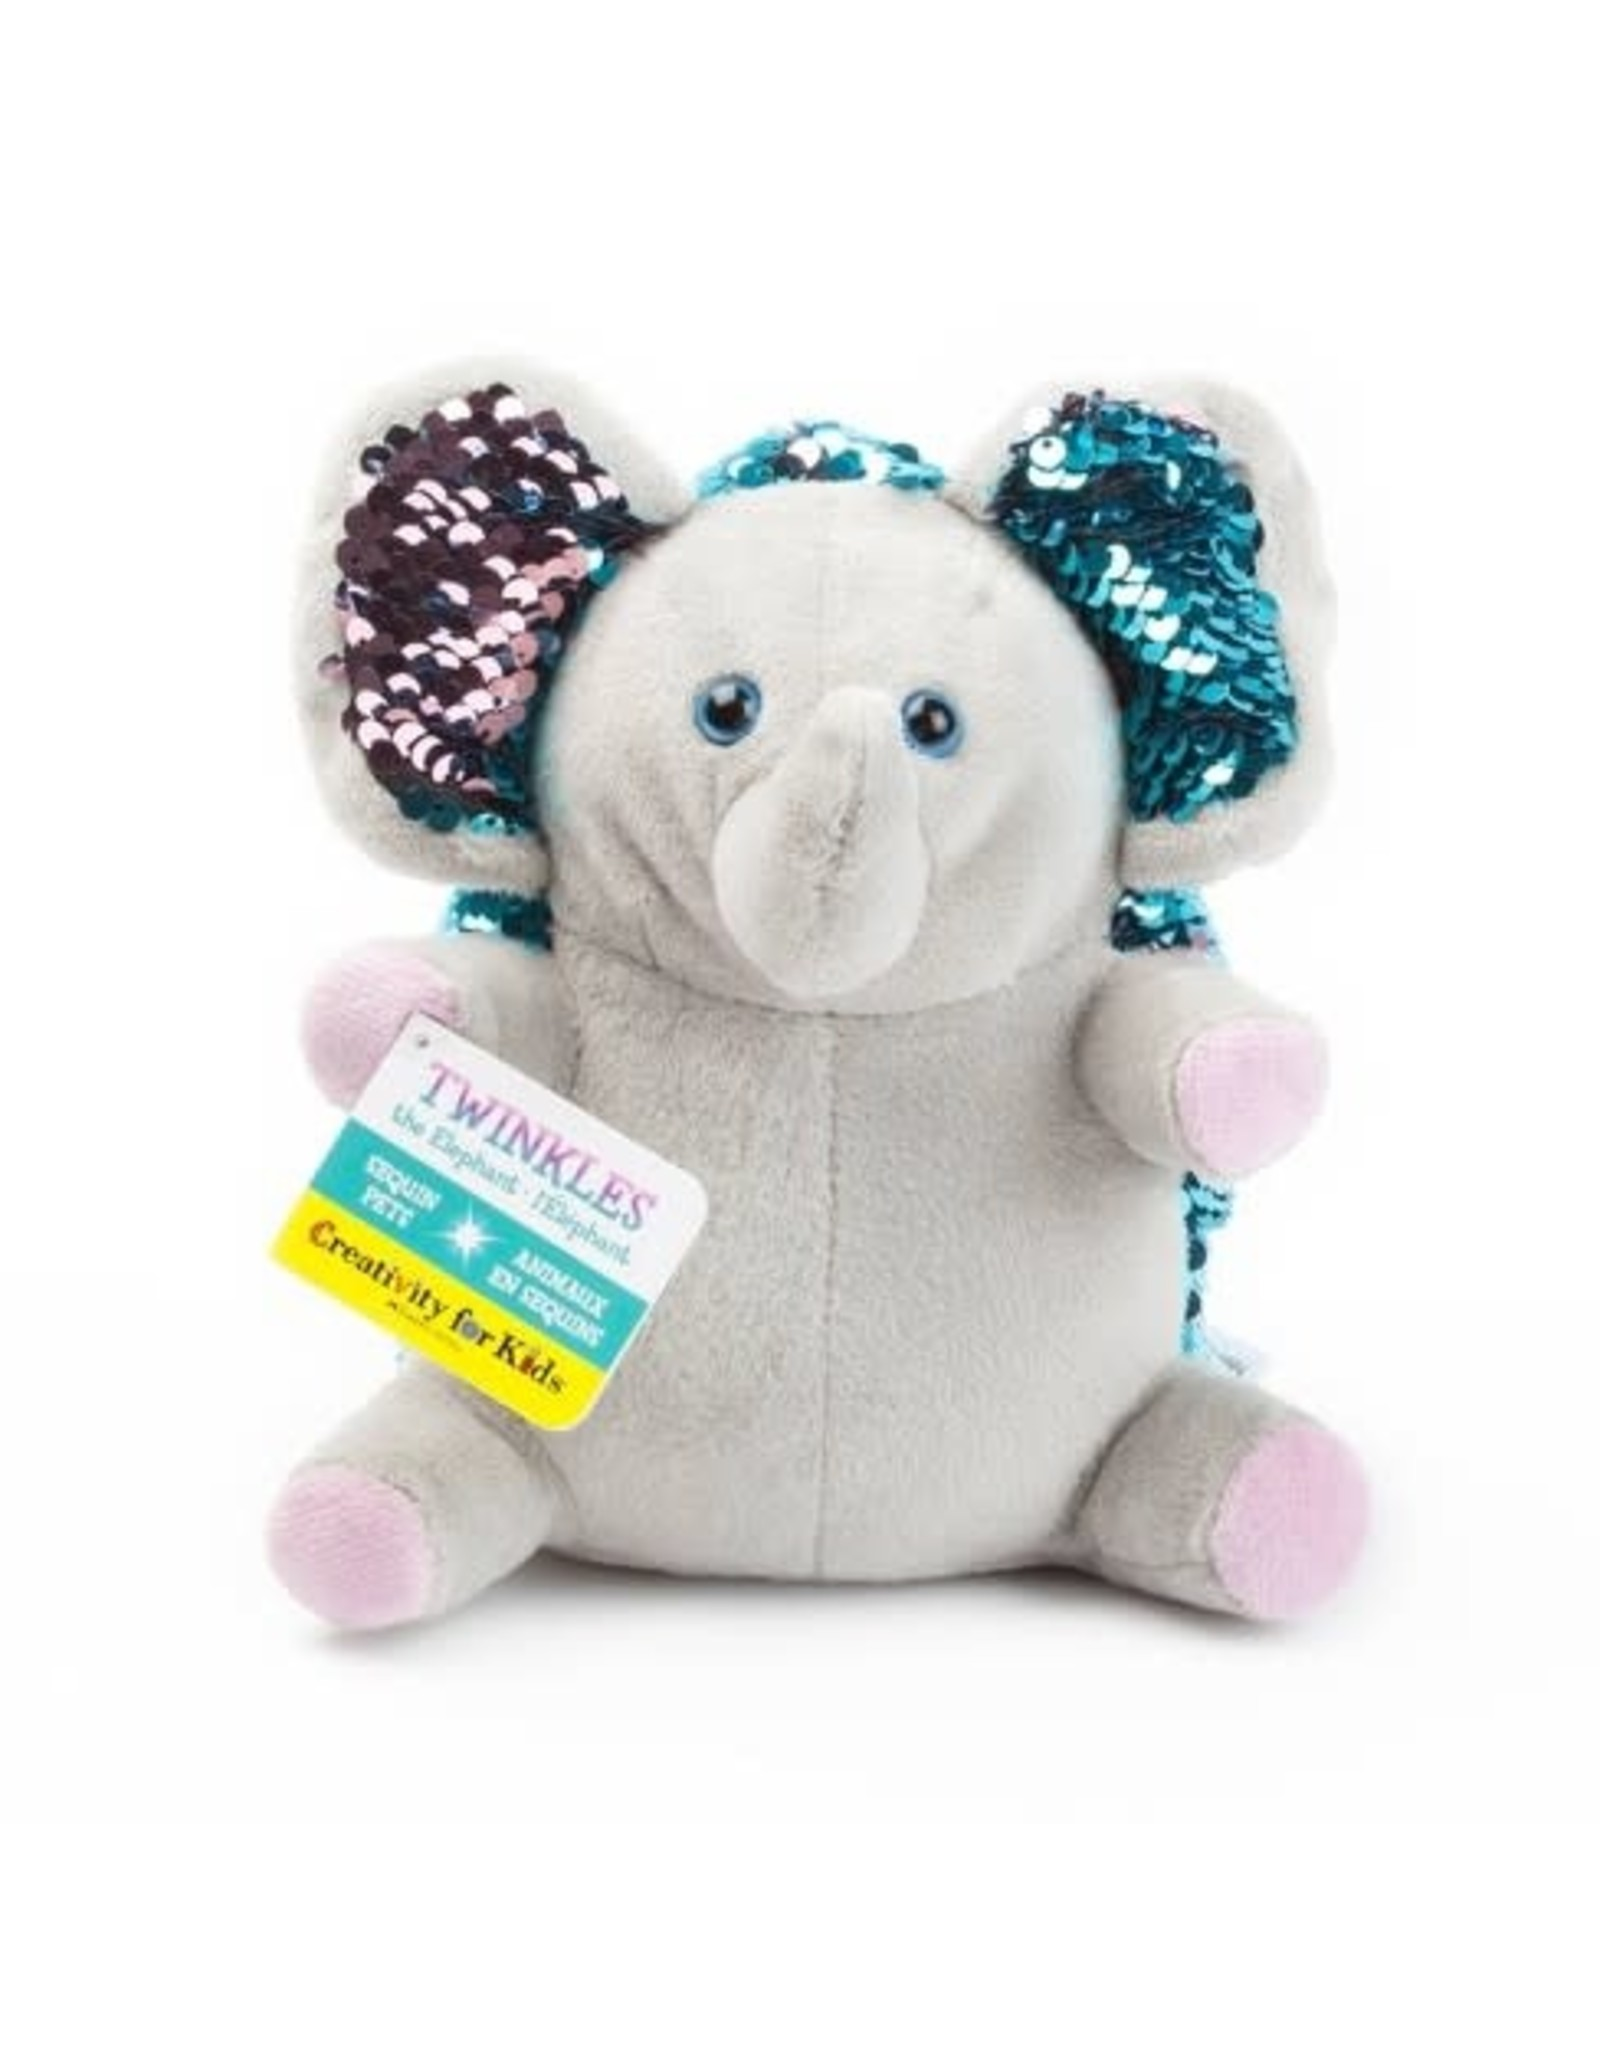 Creativity For Kids Mini Sequin Pets: Twinkles the Elephant